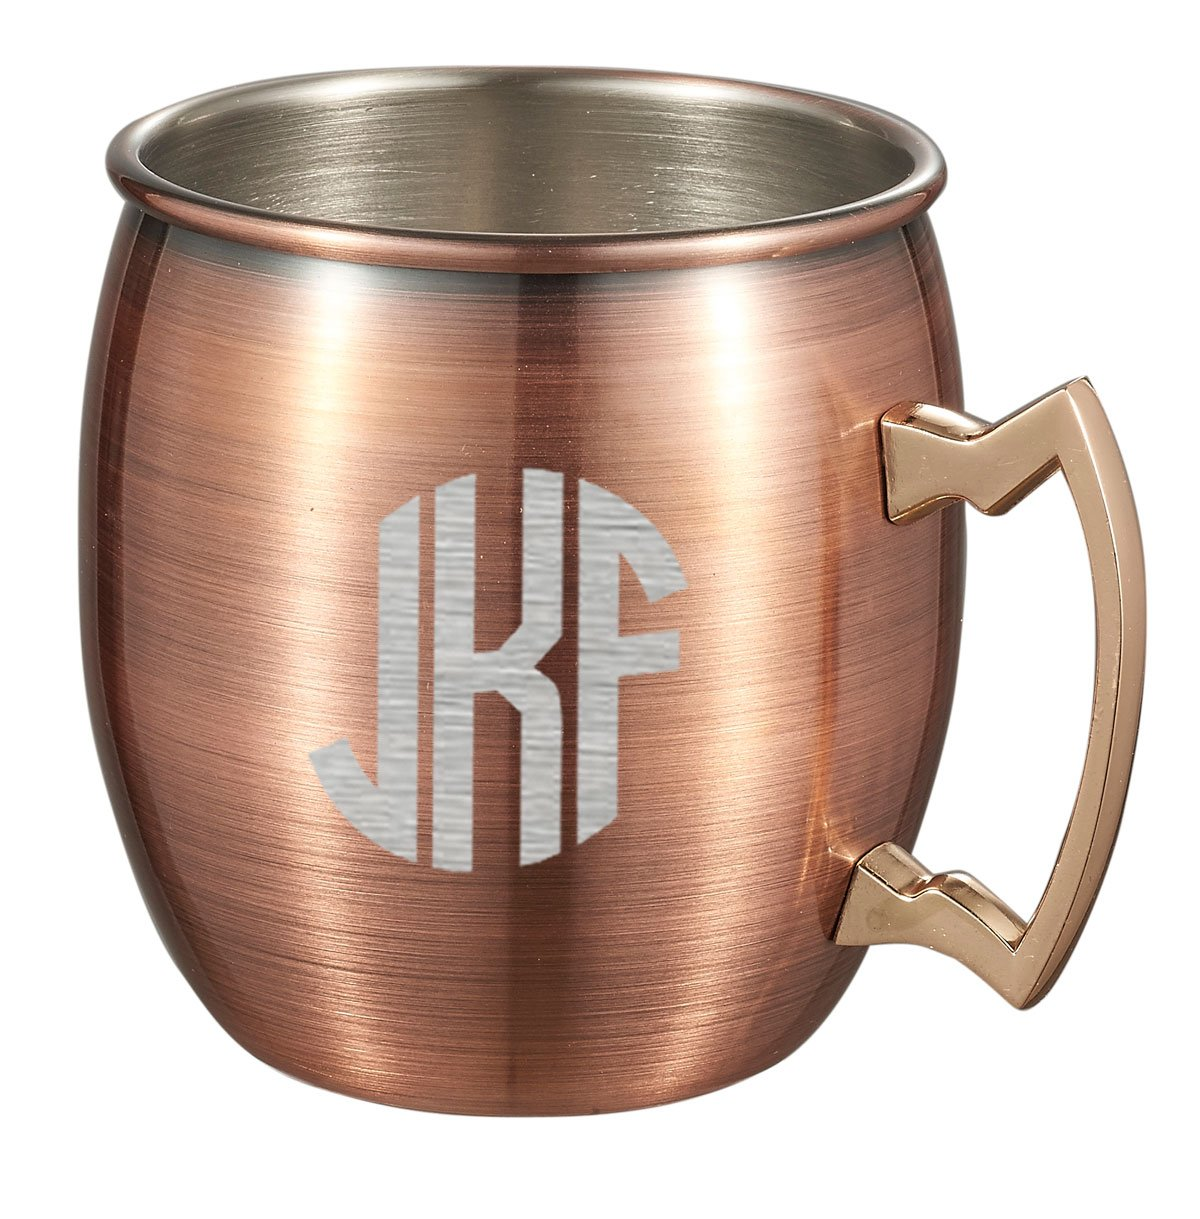 Personalized Antique Copper Finish Stainless Steel Moscow Mule Mug - Free Monogram